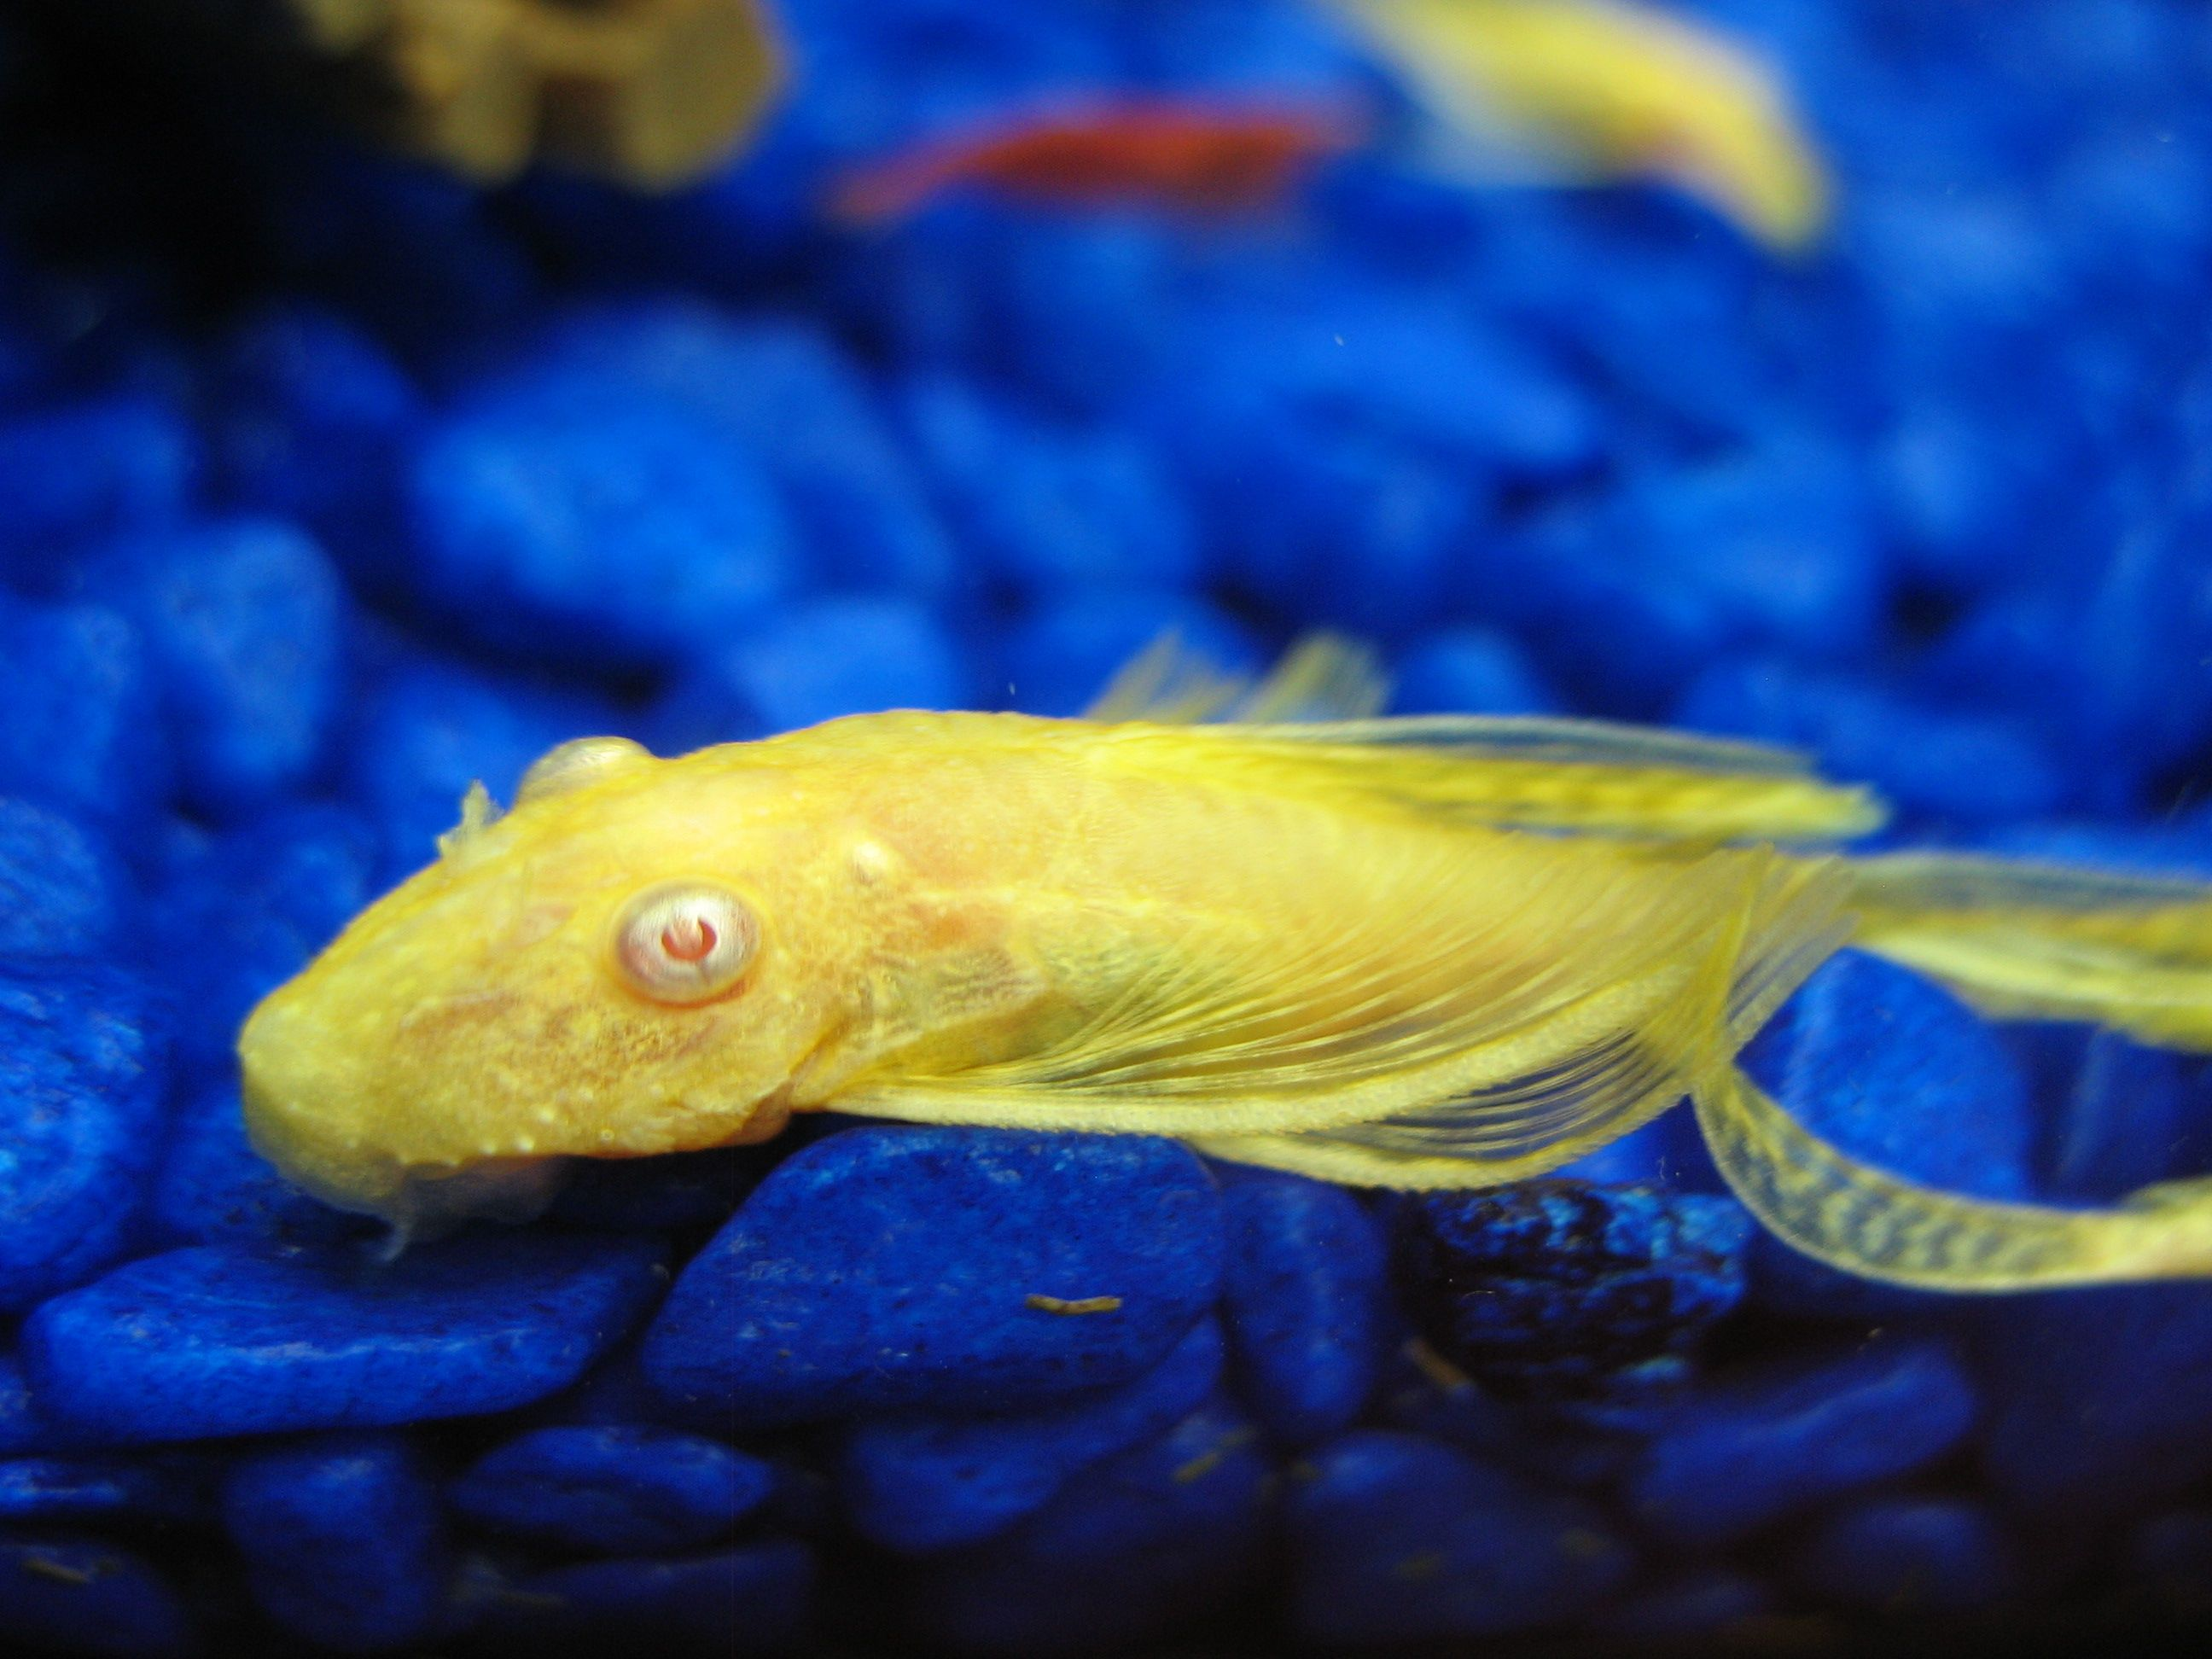 The Albino Bristlenose Pleco Is As Unique As They Come And Can Grow To Approx 5 In Adulthood Aquarium Fish Tropical Fish Saltwater Aquarium Fish